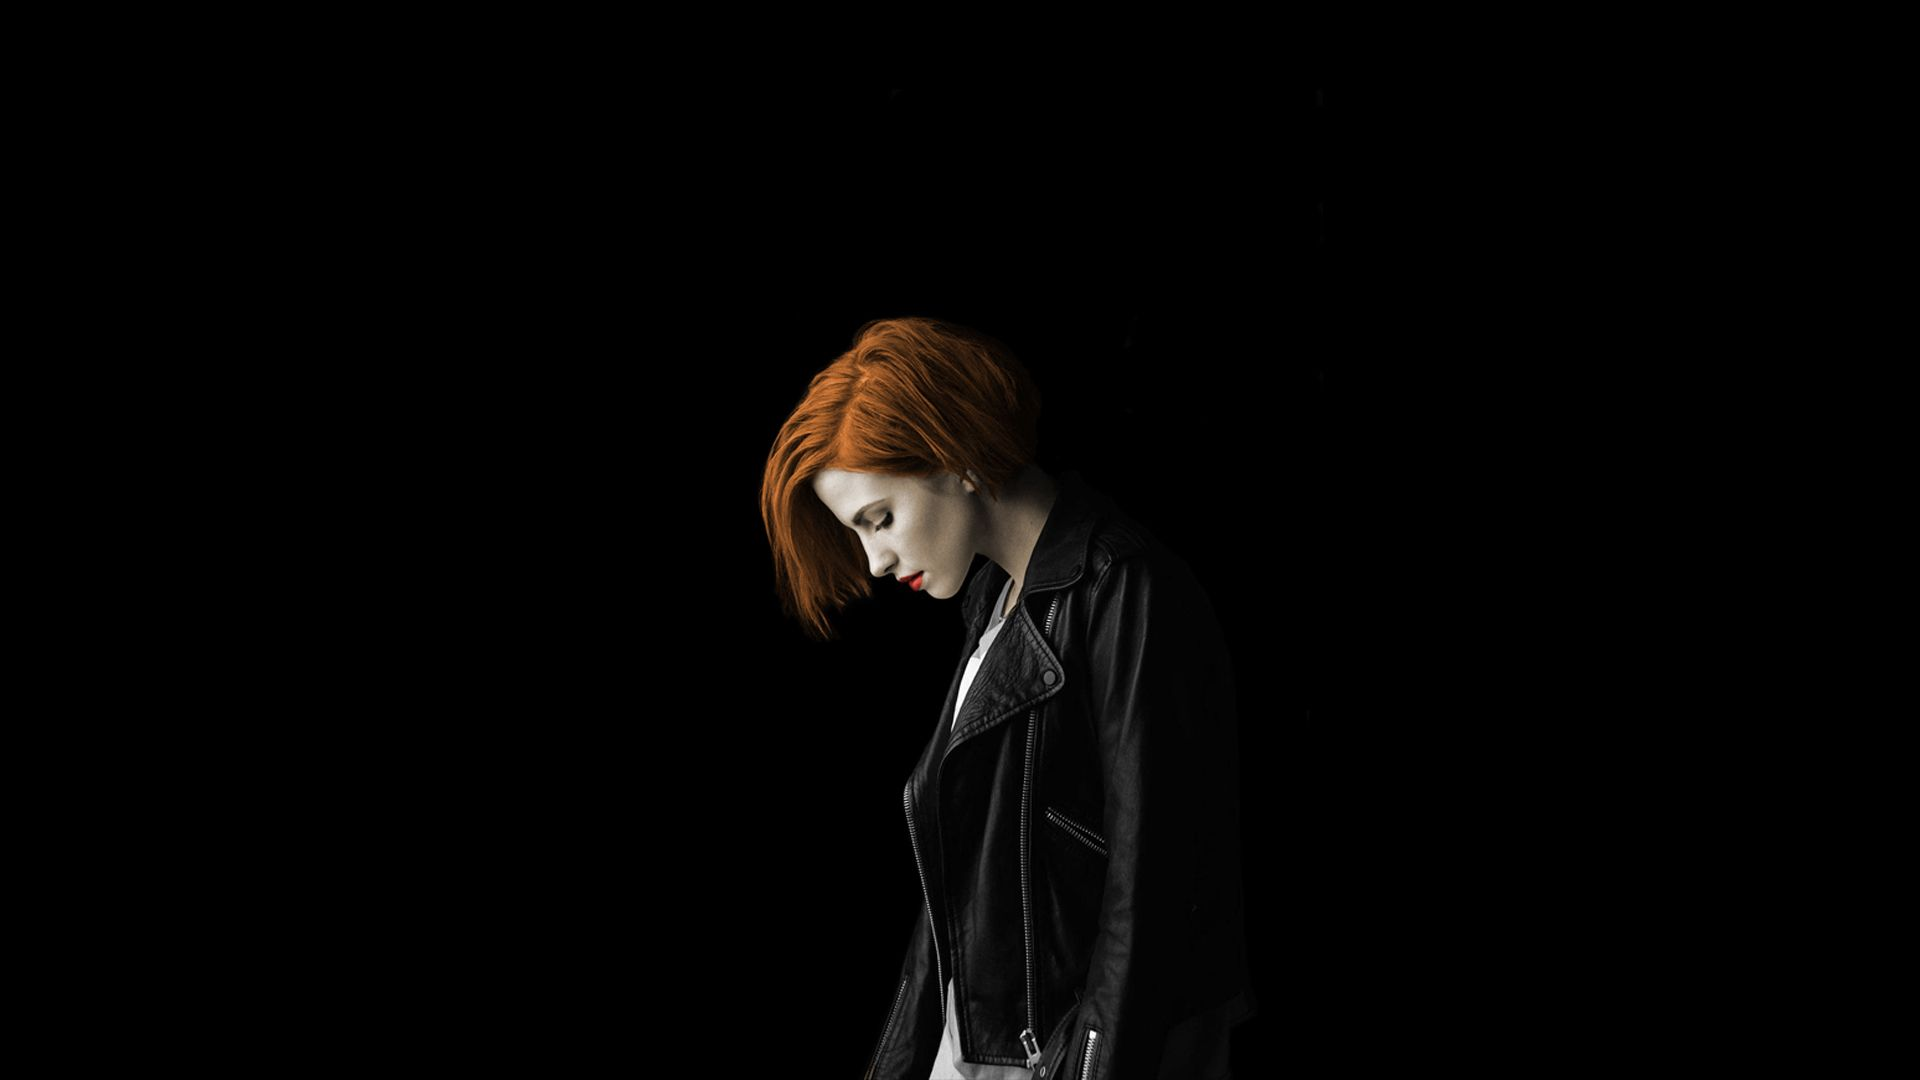 Hayley Williams Wallpaper 5   1920 X 1080 stmednet 1920x1080